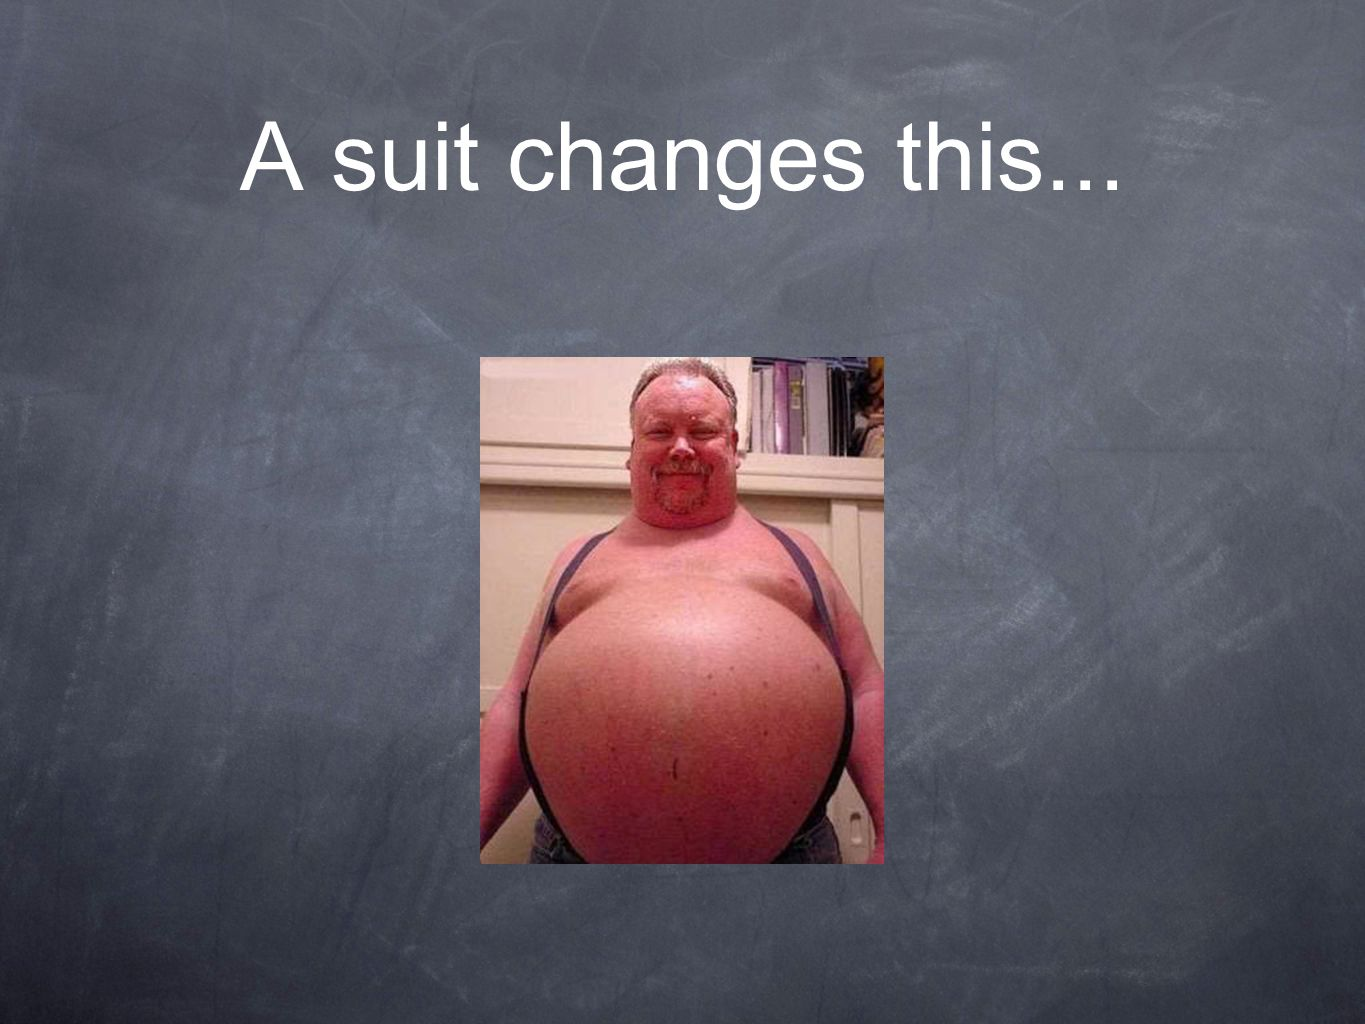 A suit changes this...